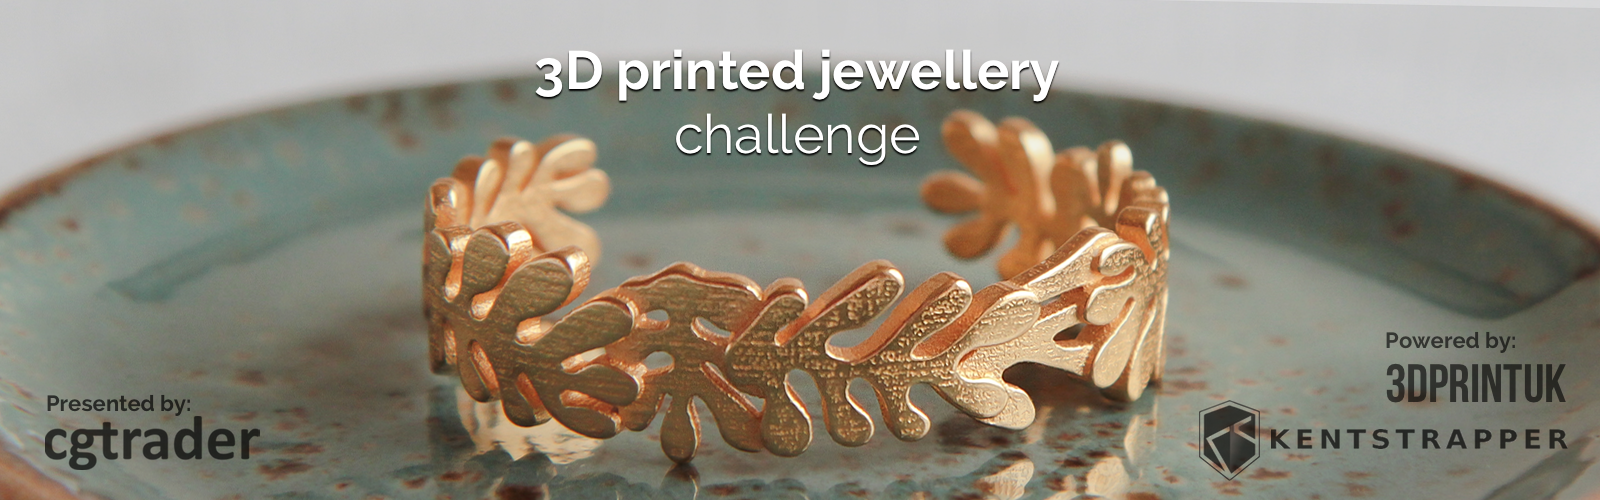 3D Printed Jewellery Challenge